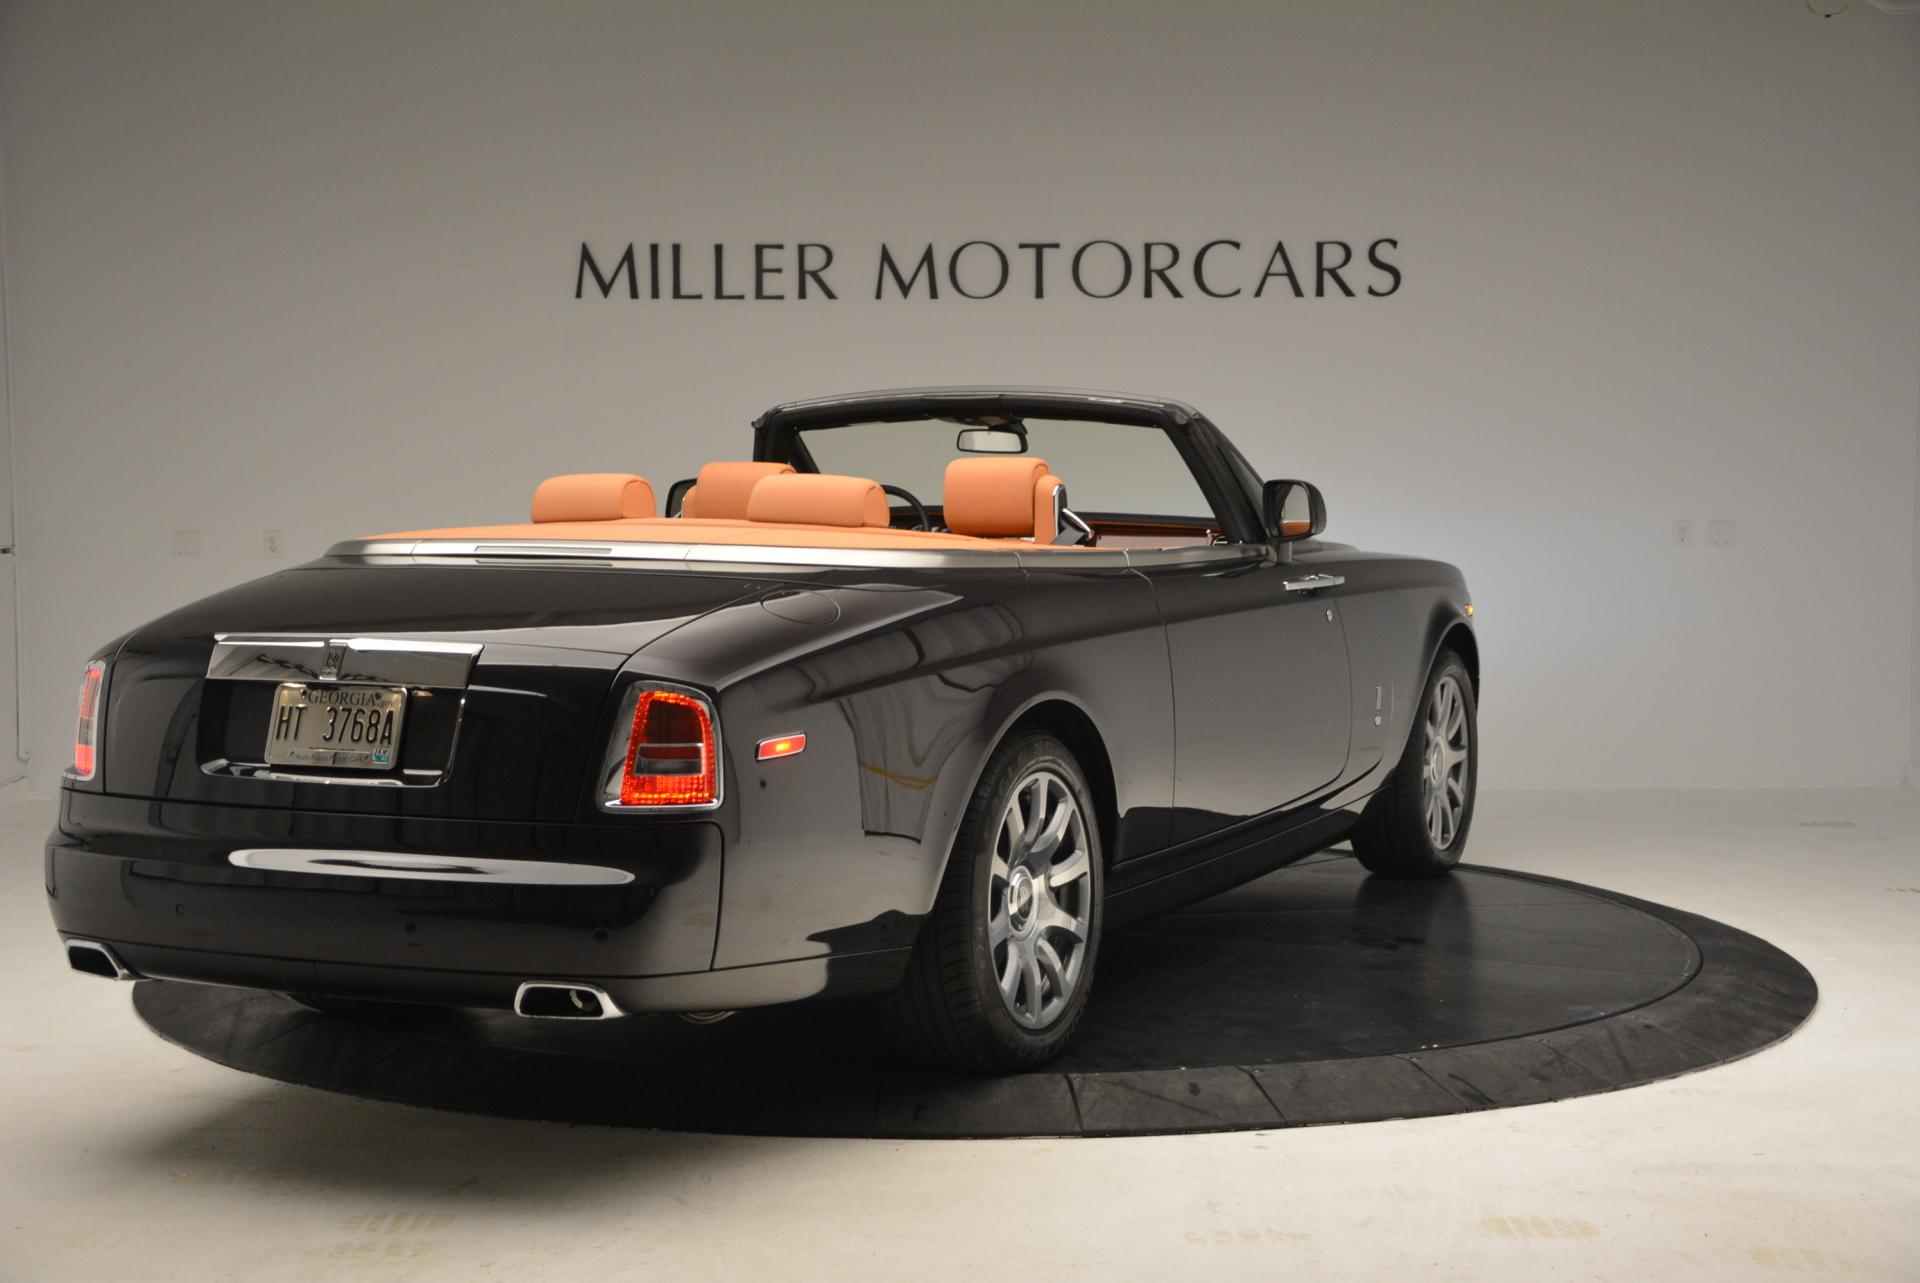 New 2016 Rolls-Royce Phantom Drophead Coupe Bespoke For Sale In Greenwich, CT 208_p7